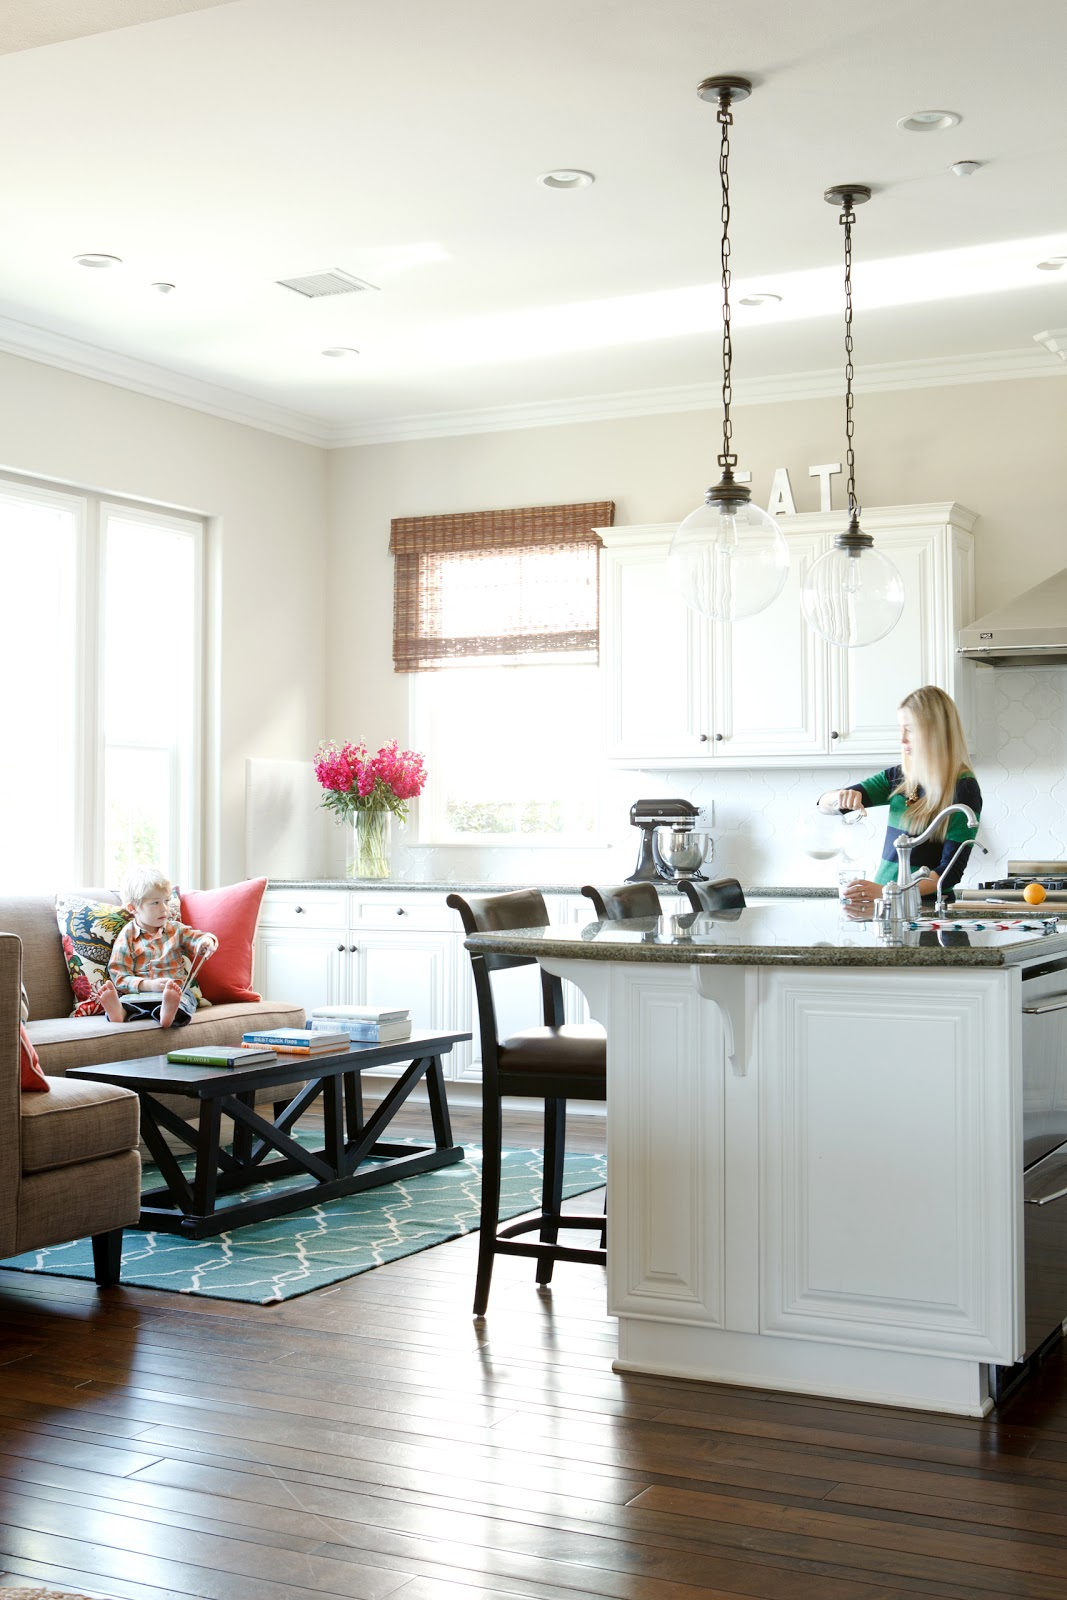 Kitchen Sitting Rooms Designs: BDG Style: The Kitchen~San Clemente Project